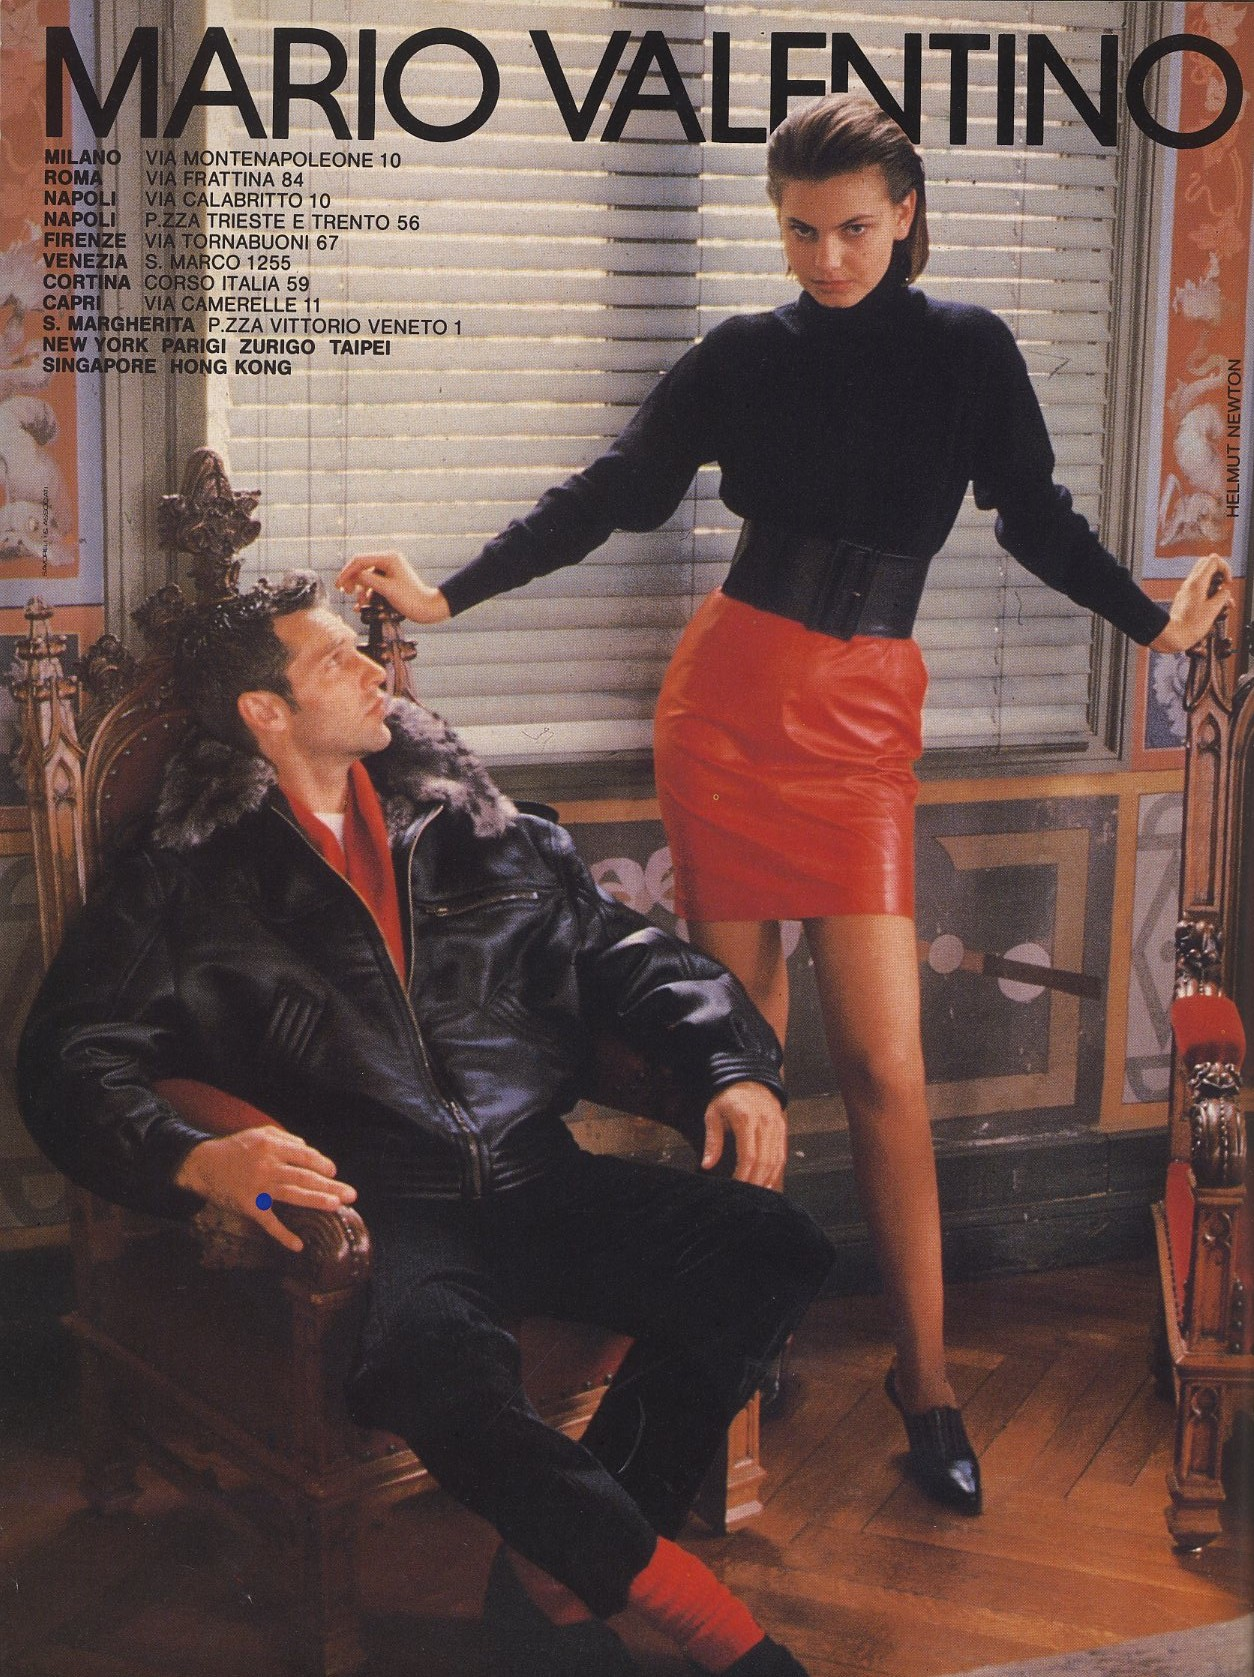 MARIO VALENTINO | AD | PHOTOGRAPHY HELMUT NEWTON | L'UOMO VOGUE N.211 | OCTOBER 1990